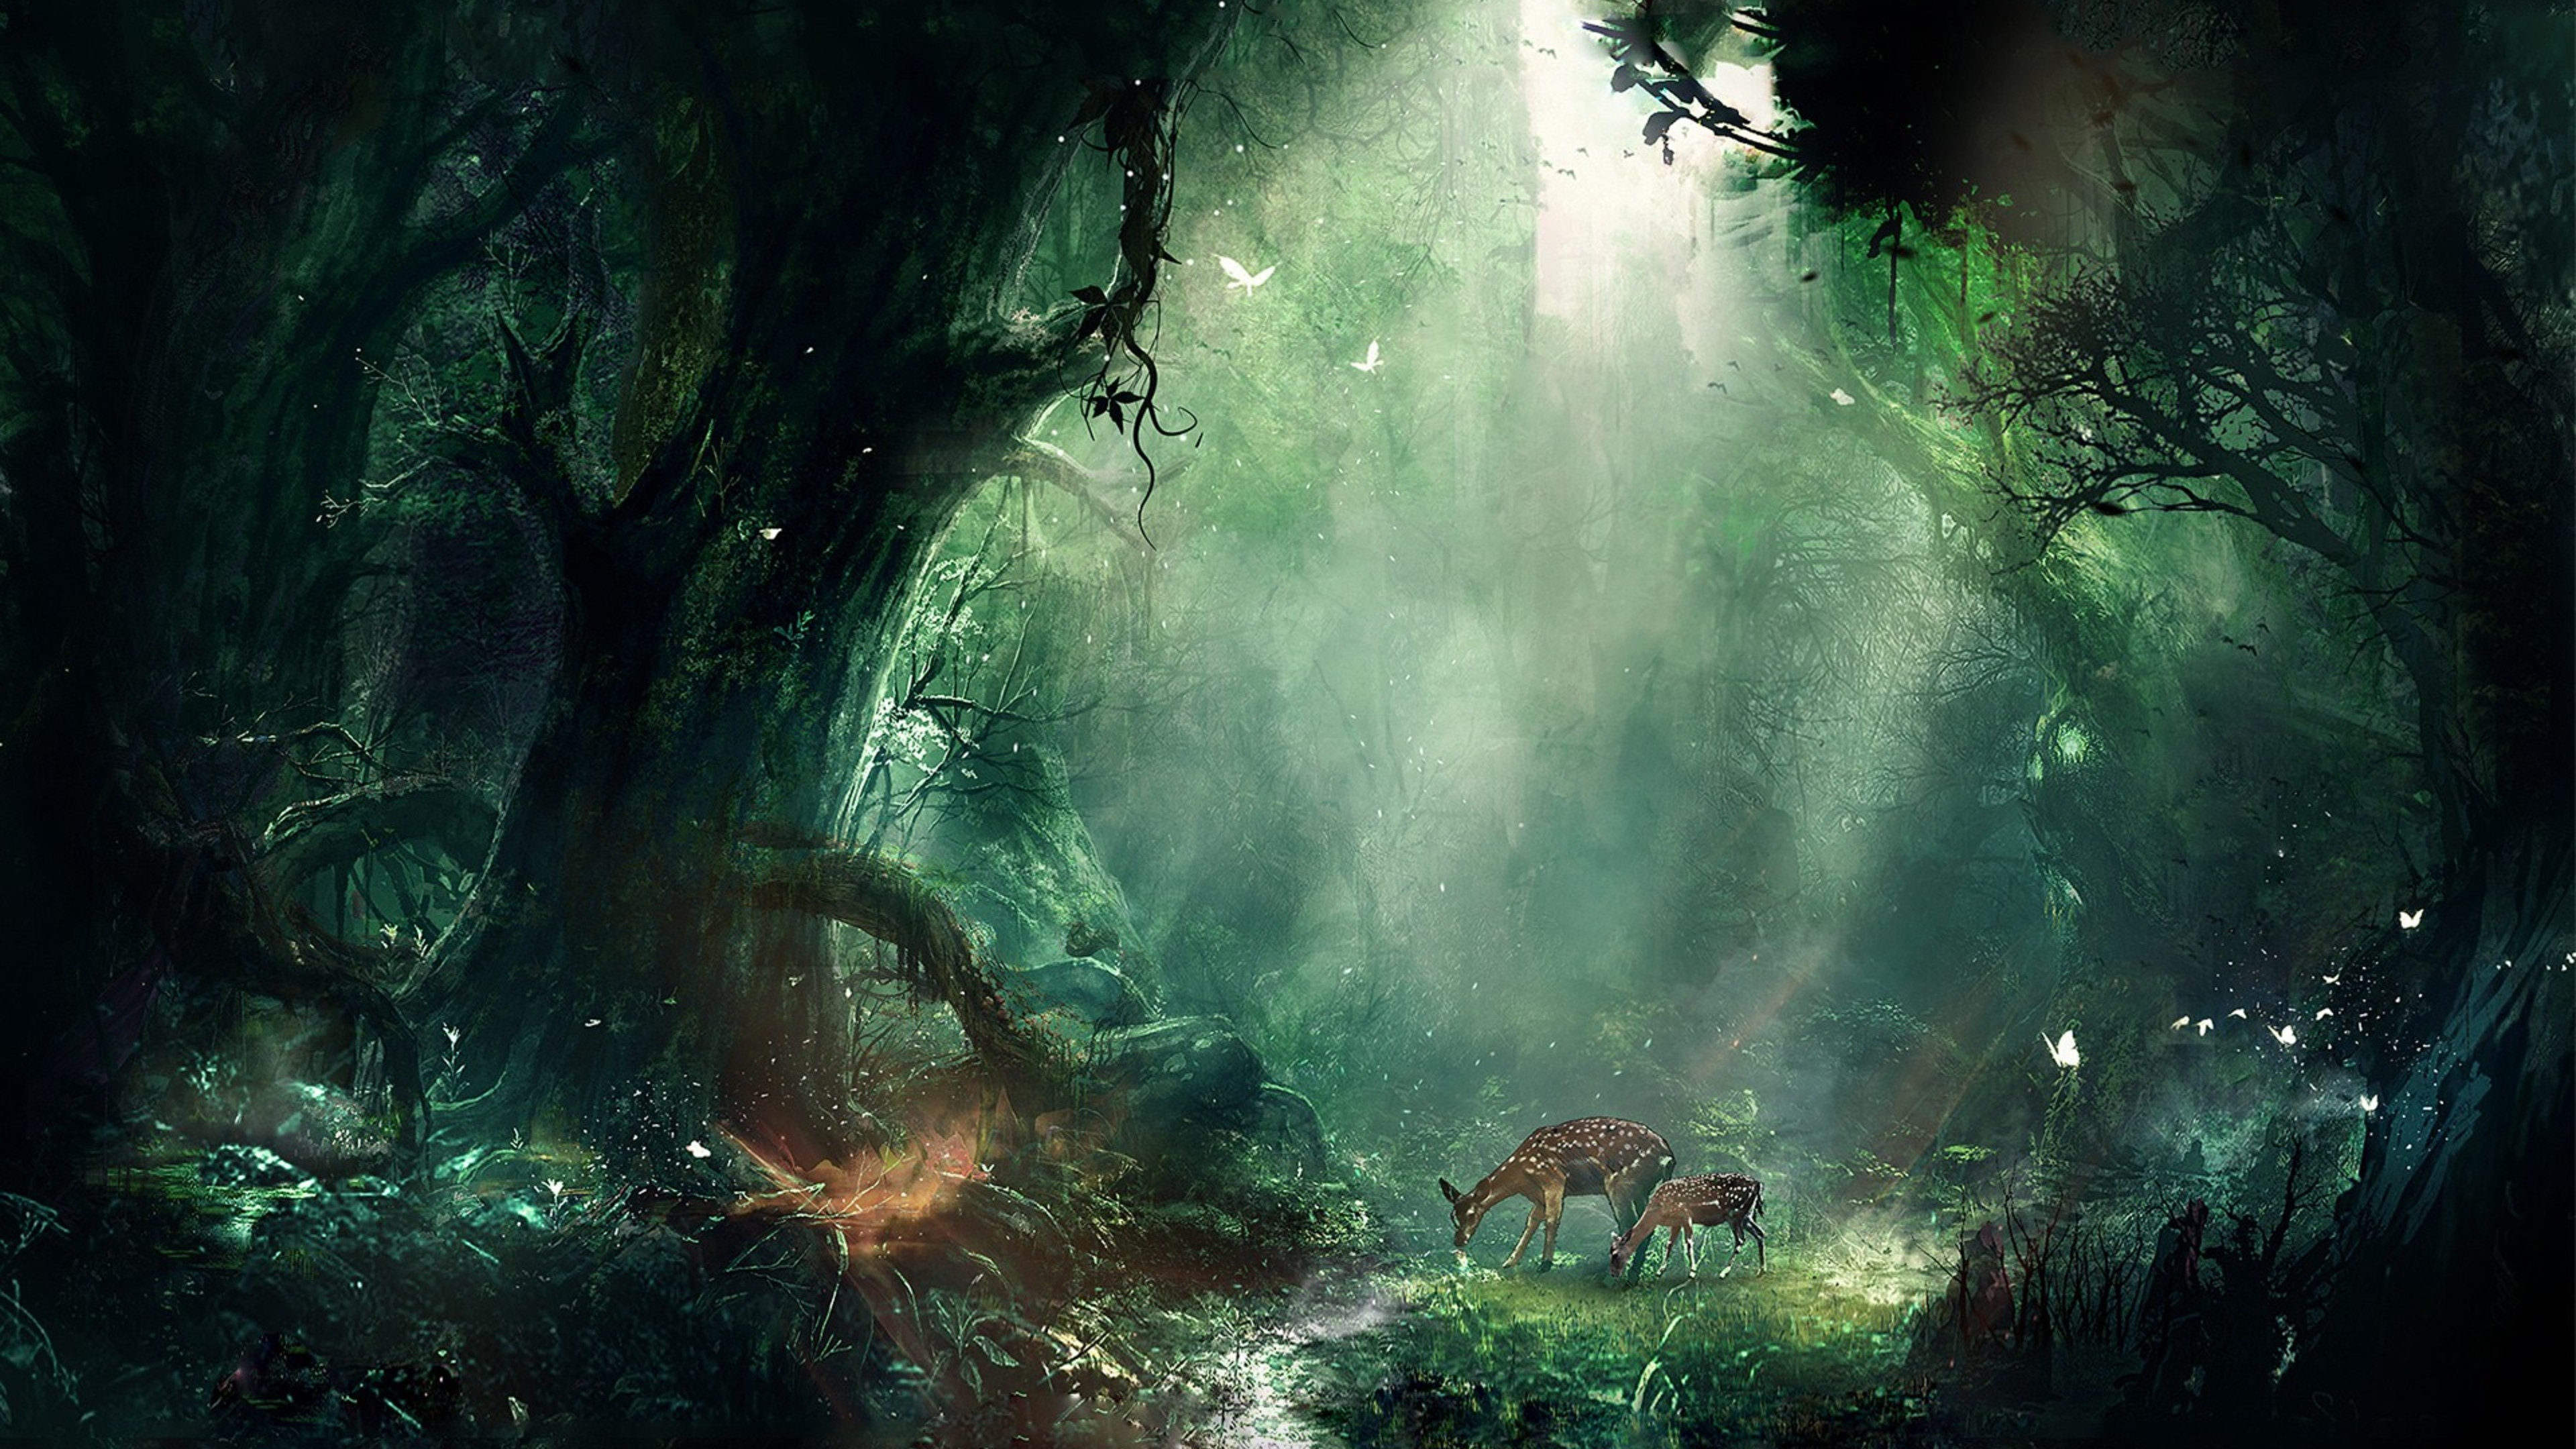 Creative Detailed Hd Fantasy Wallpapers: Bambi Jungle, HD Creative, 4k Wallpapers, Images